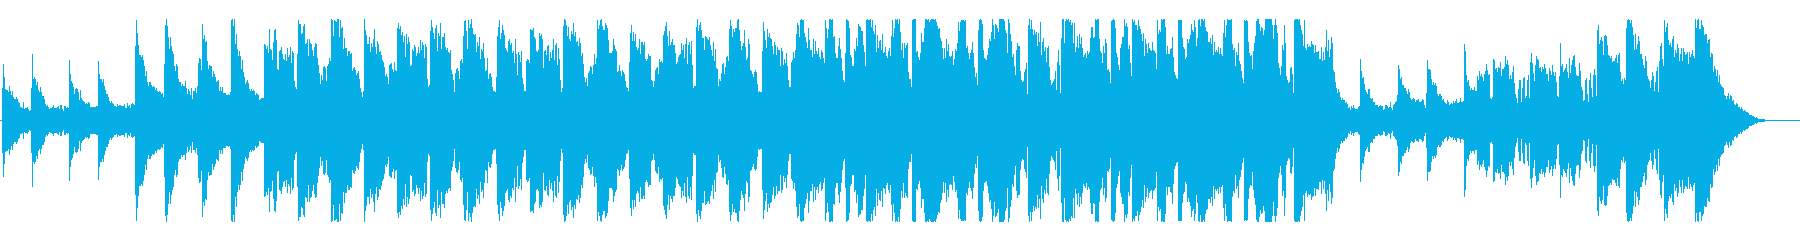 BGM of a beautiful melody with transparency's reproduced waveform